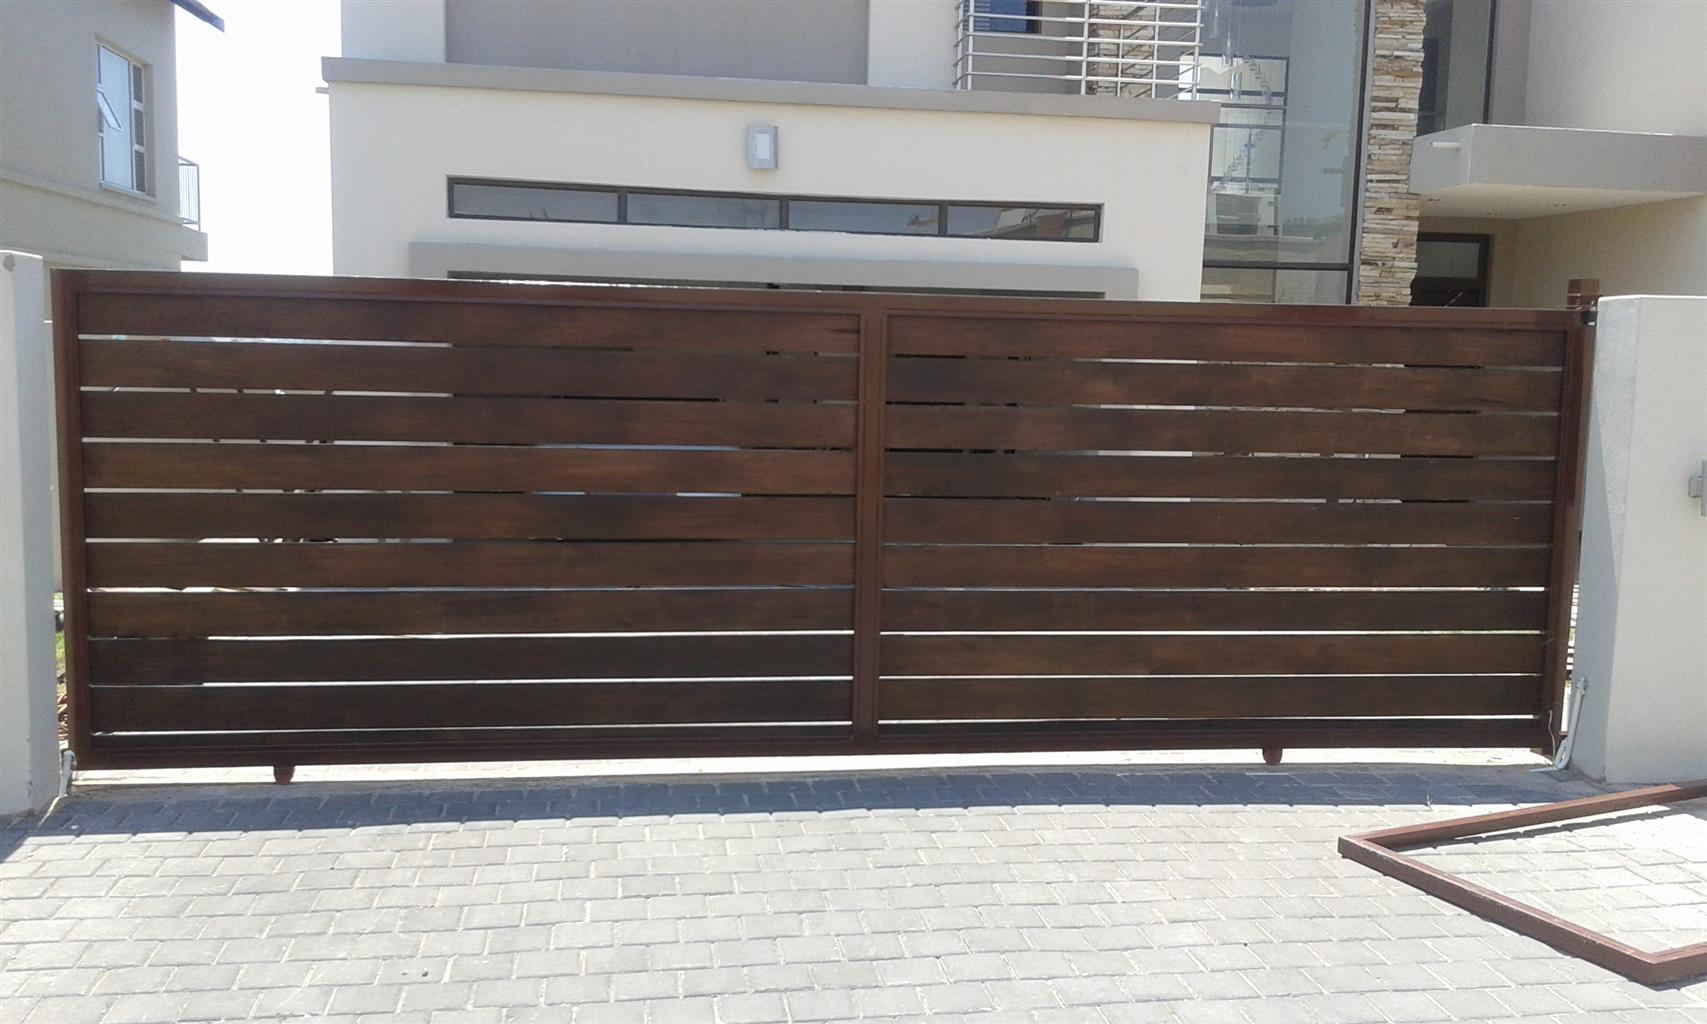 Fencing, Carports and Gates